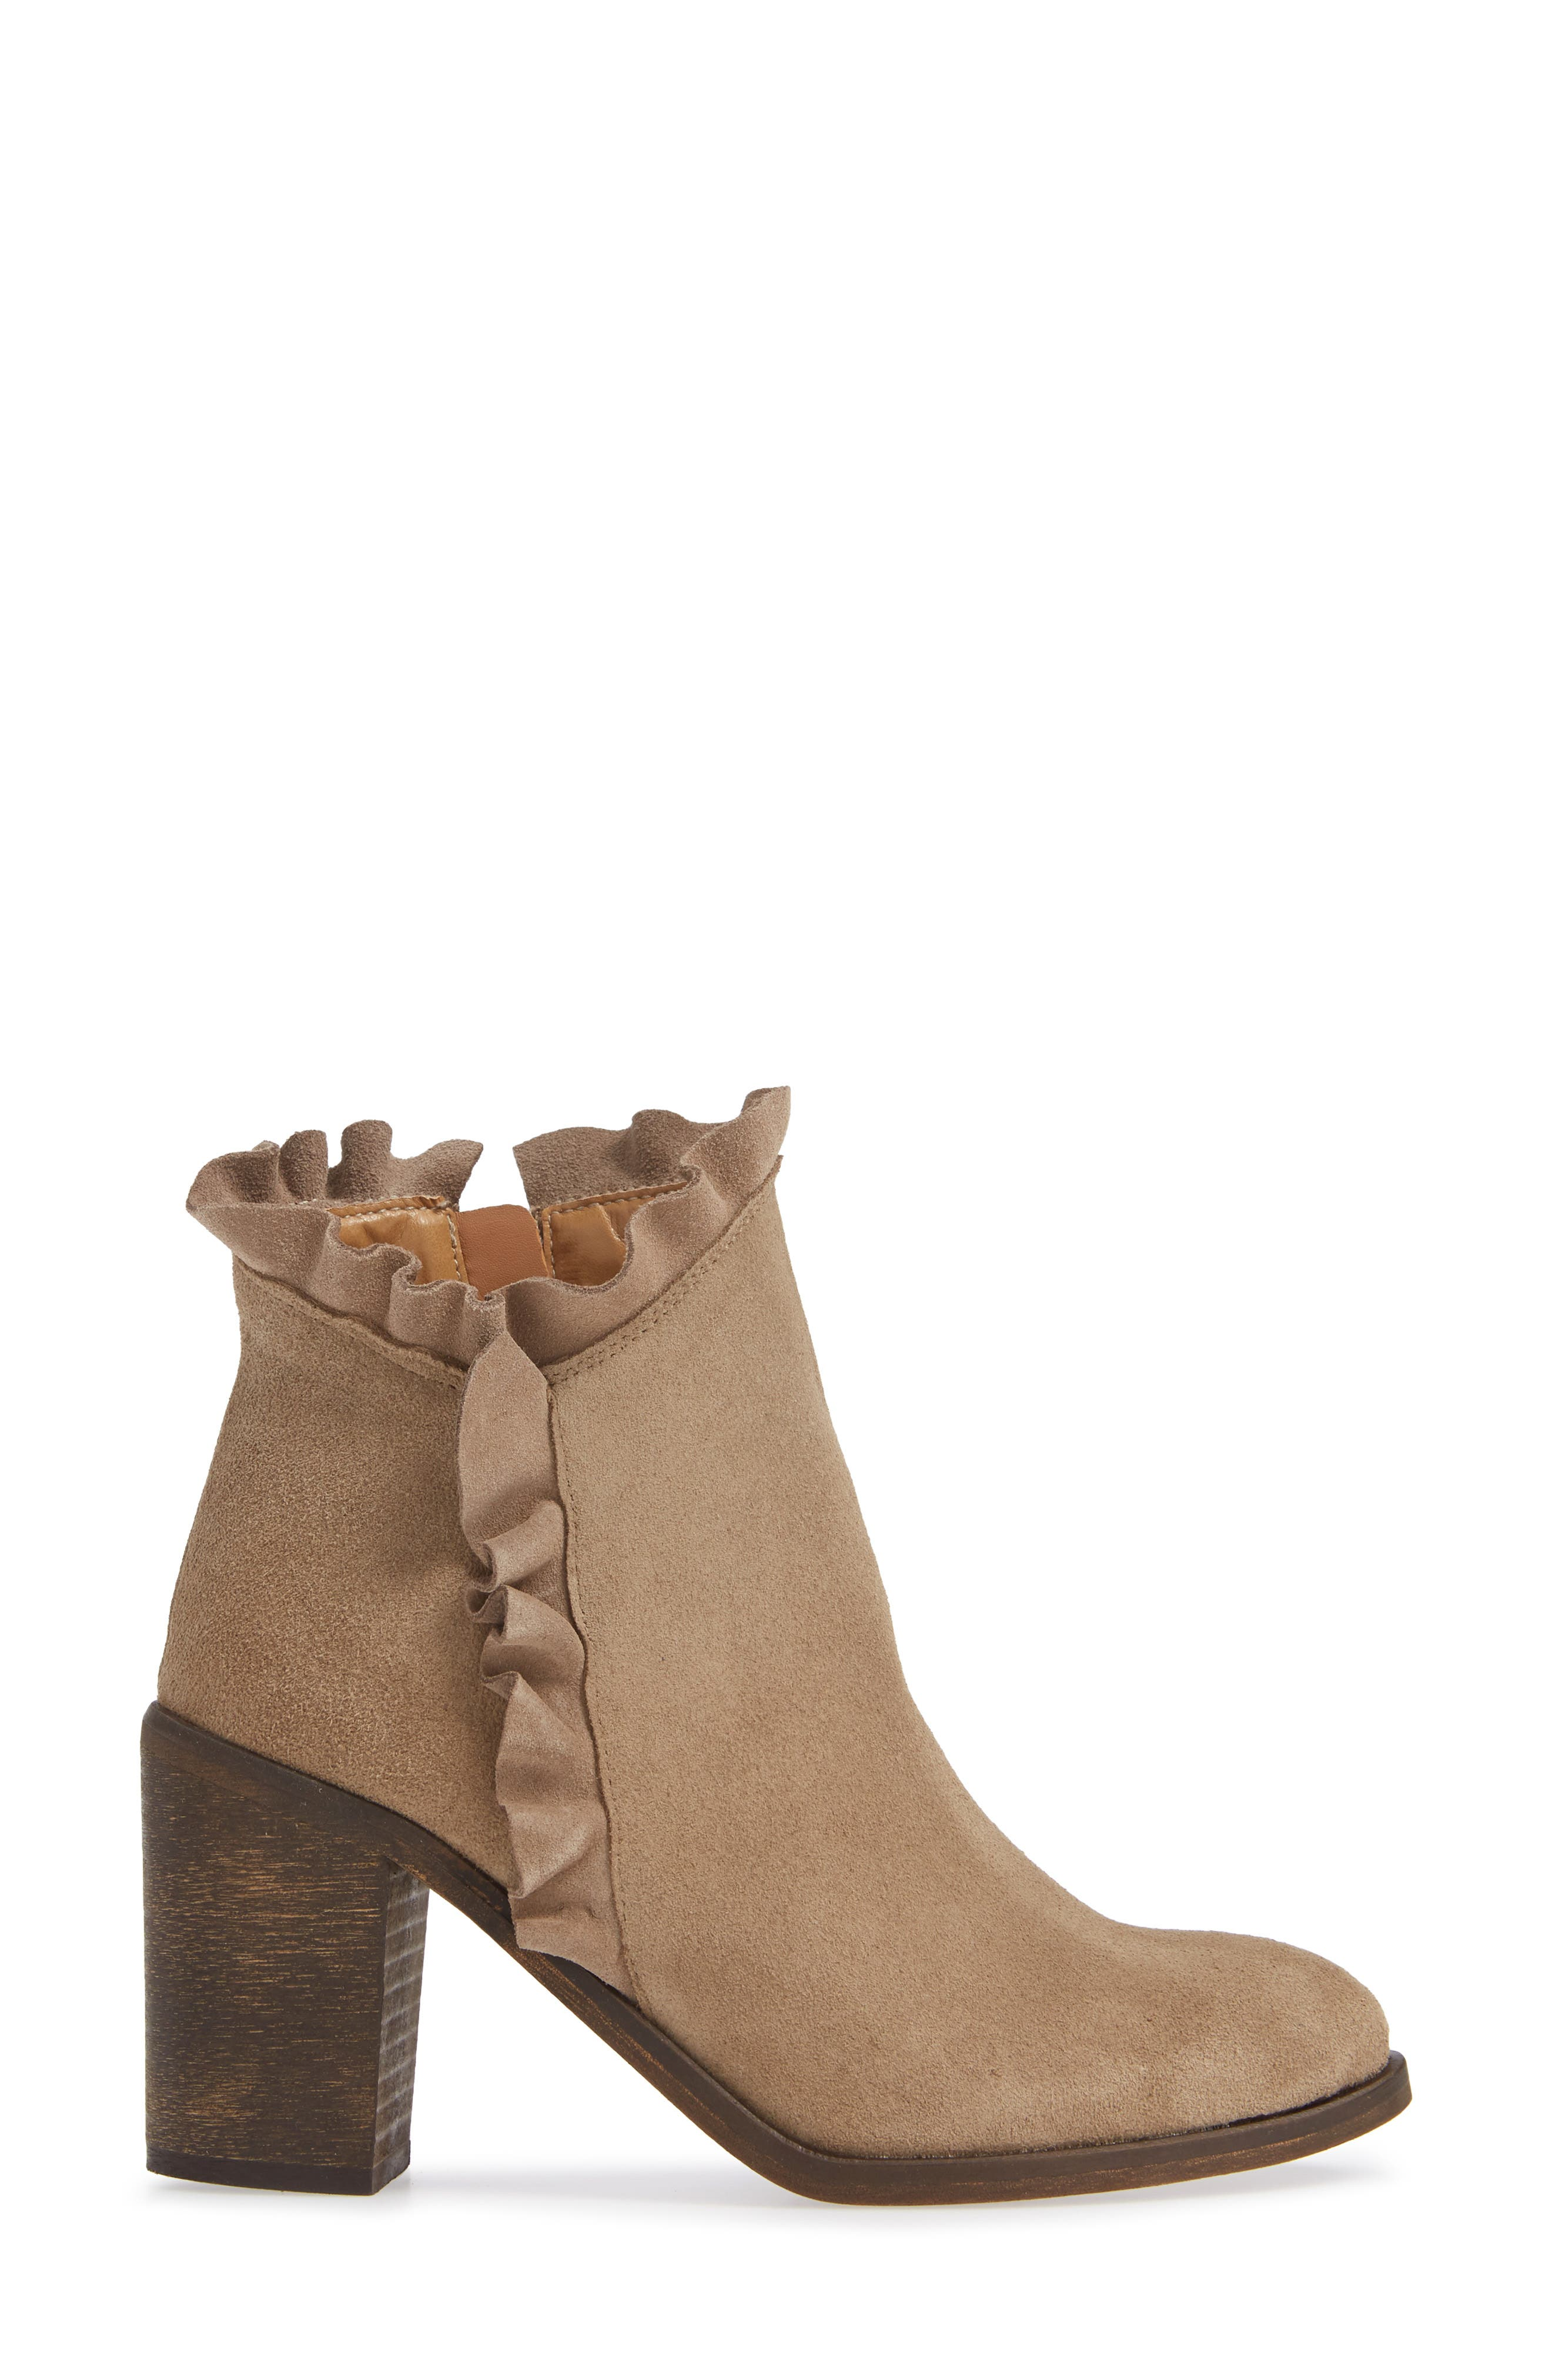 Bellamy Bootie,                             Alternate thumbnail 3, color,                             TAUPE SUEDE